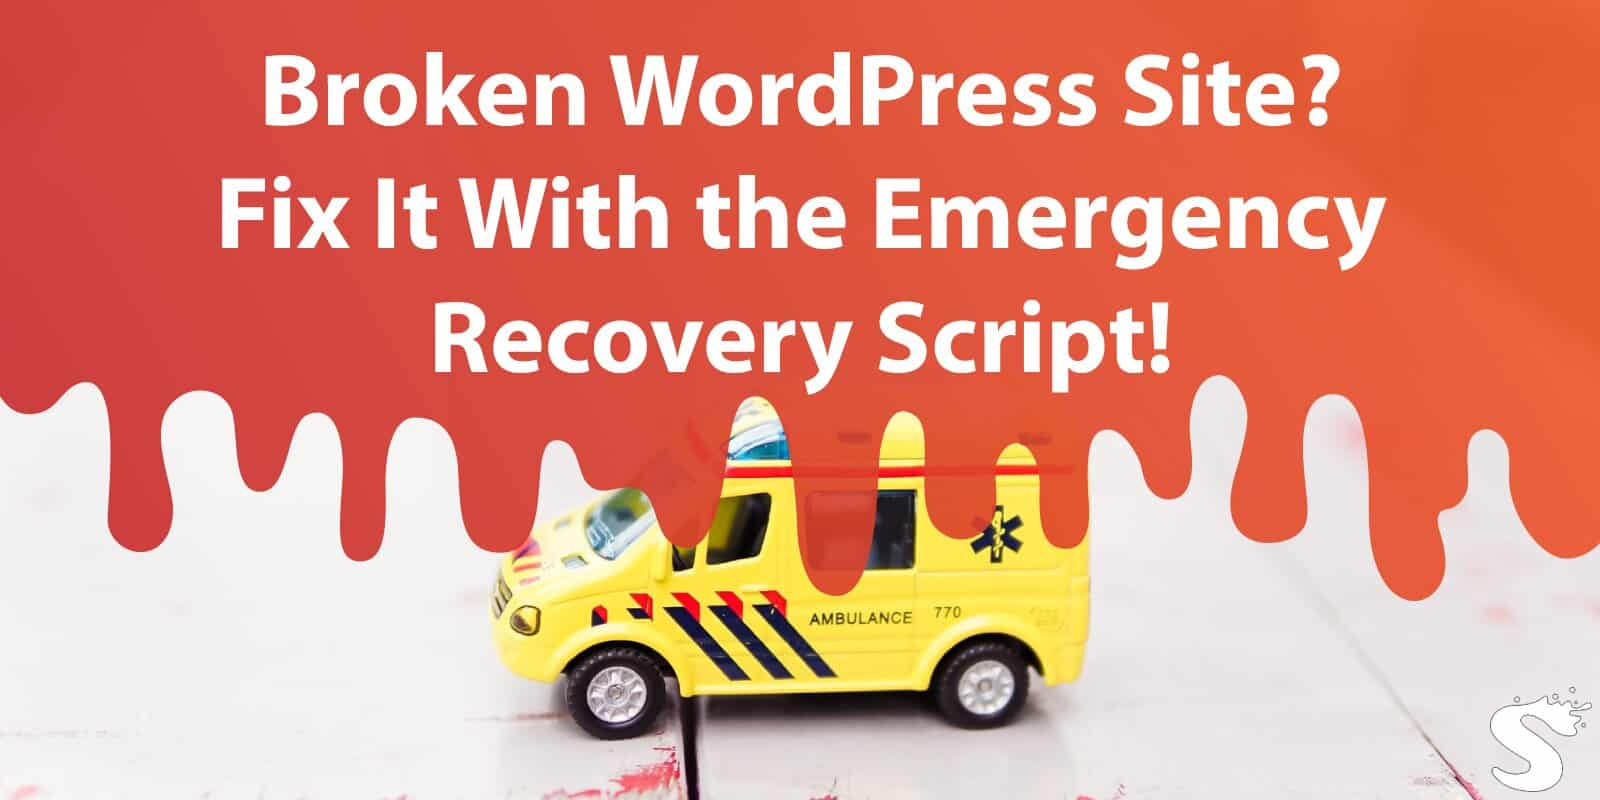 Broken WordPress Site? Fix It With the Free Emergency Recovery Script!